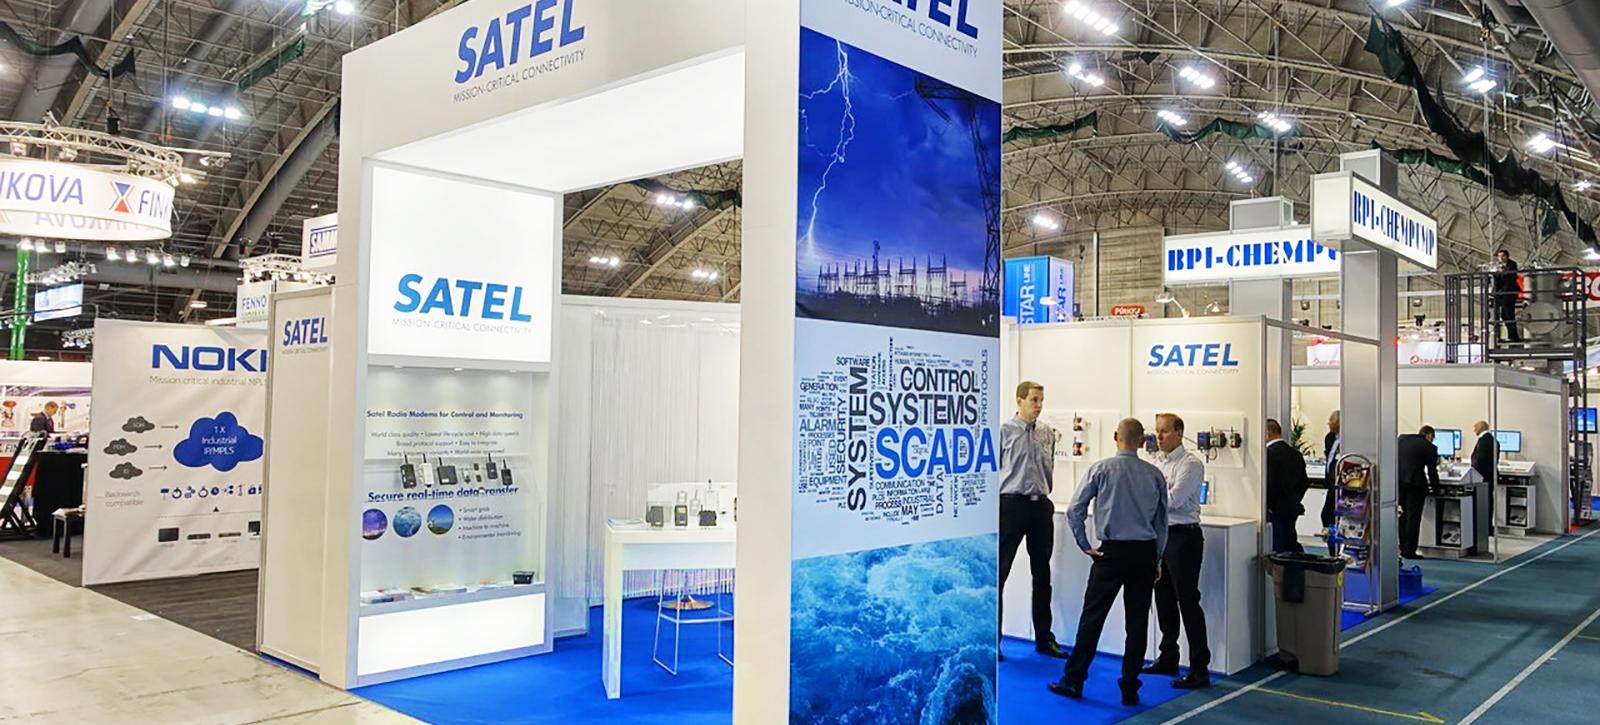 Messua exhibition stand - Satel, Energia 2016